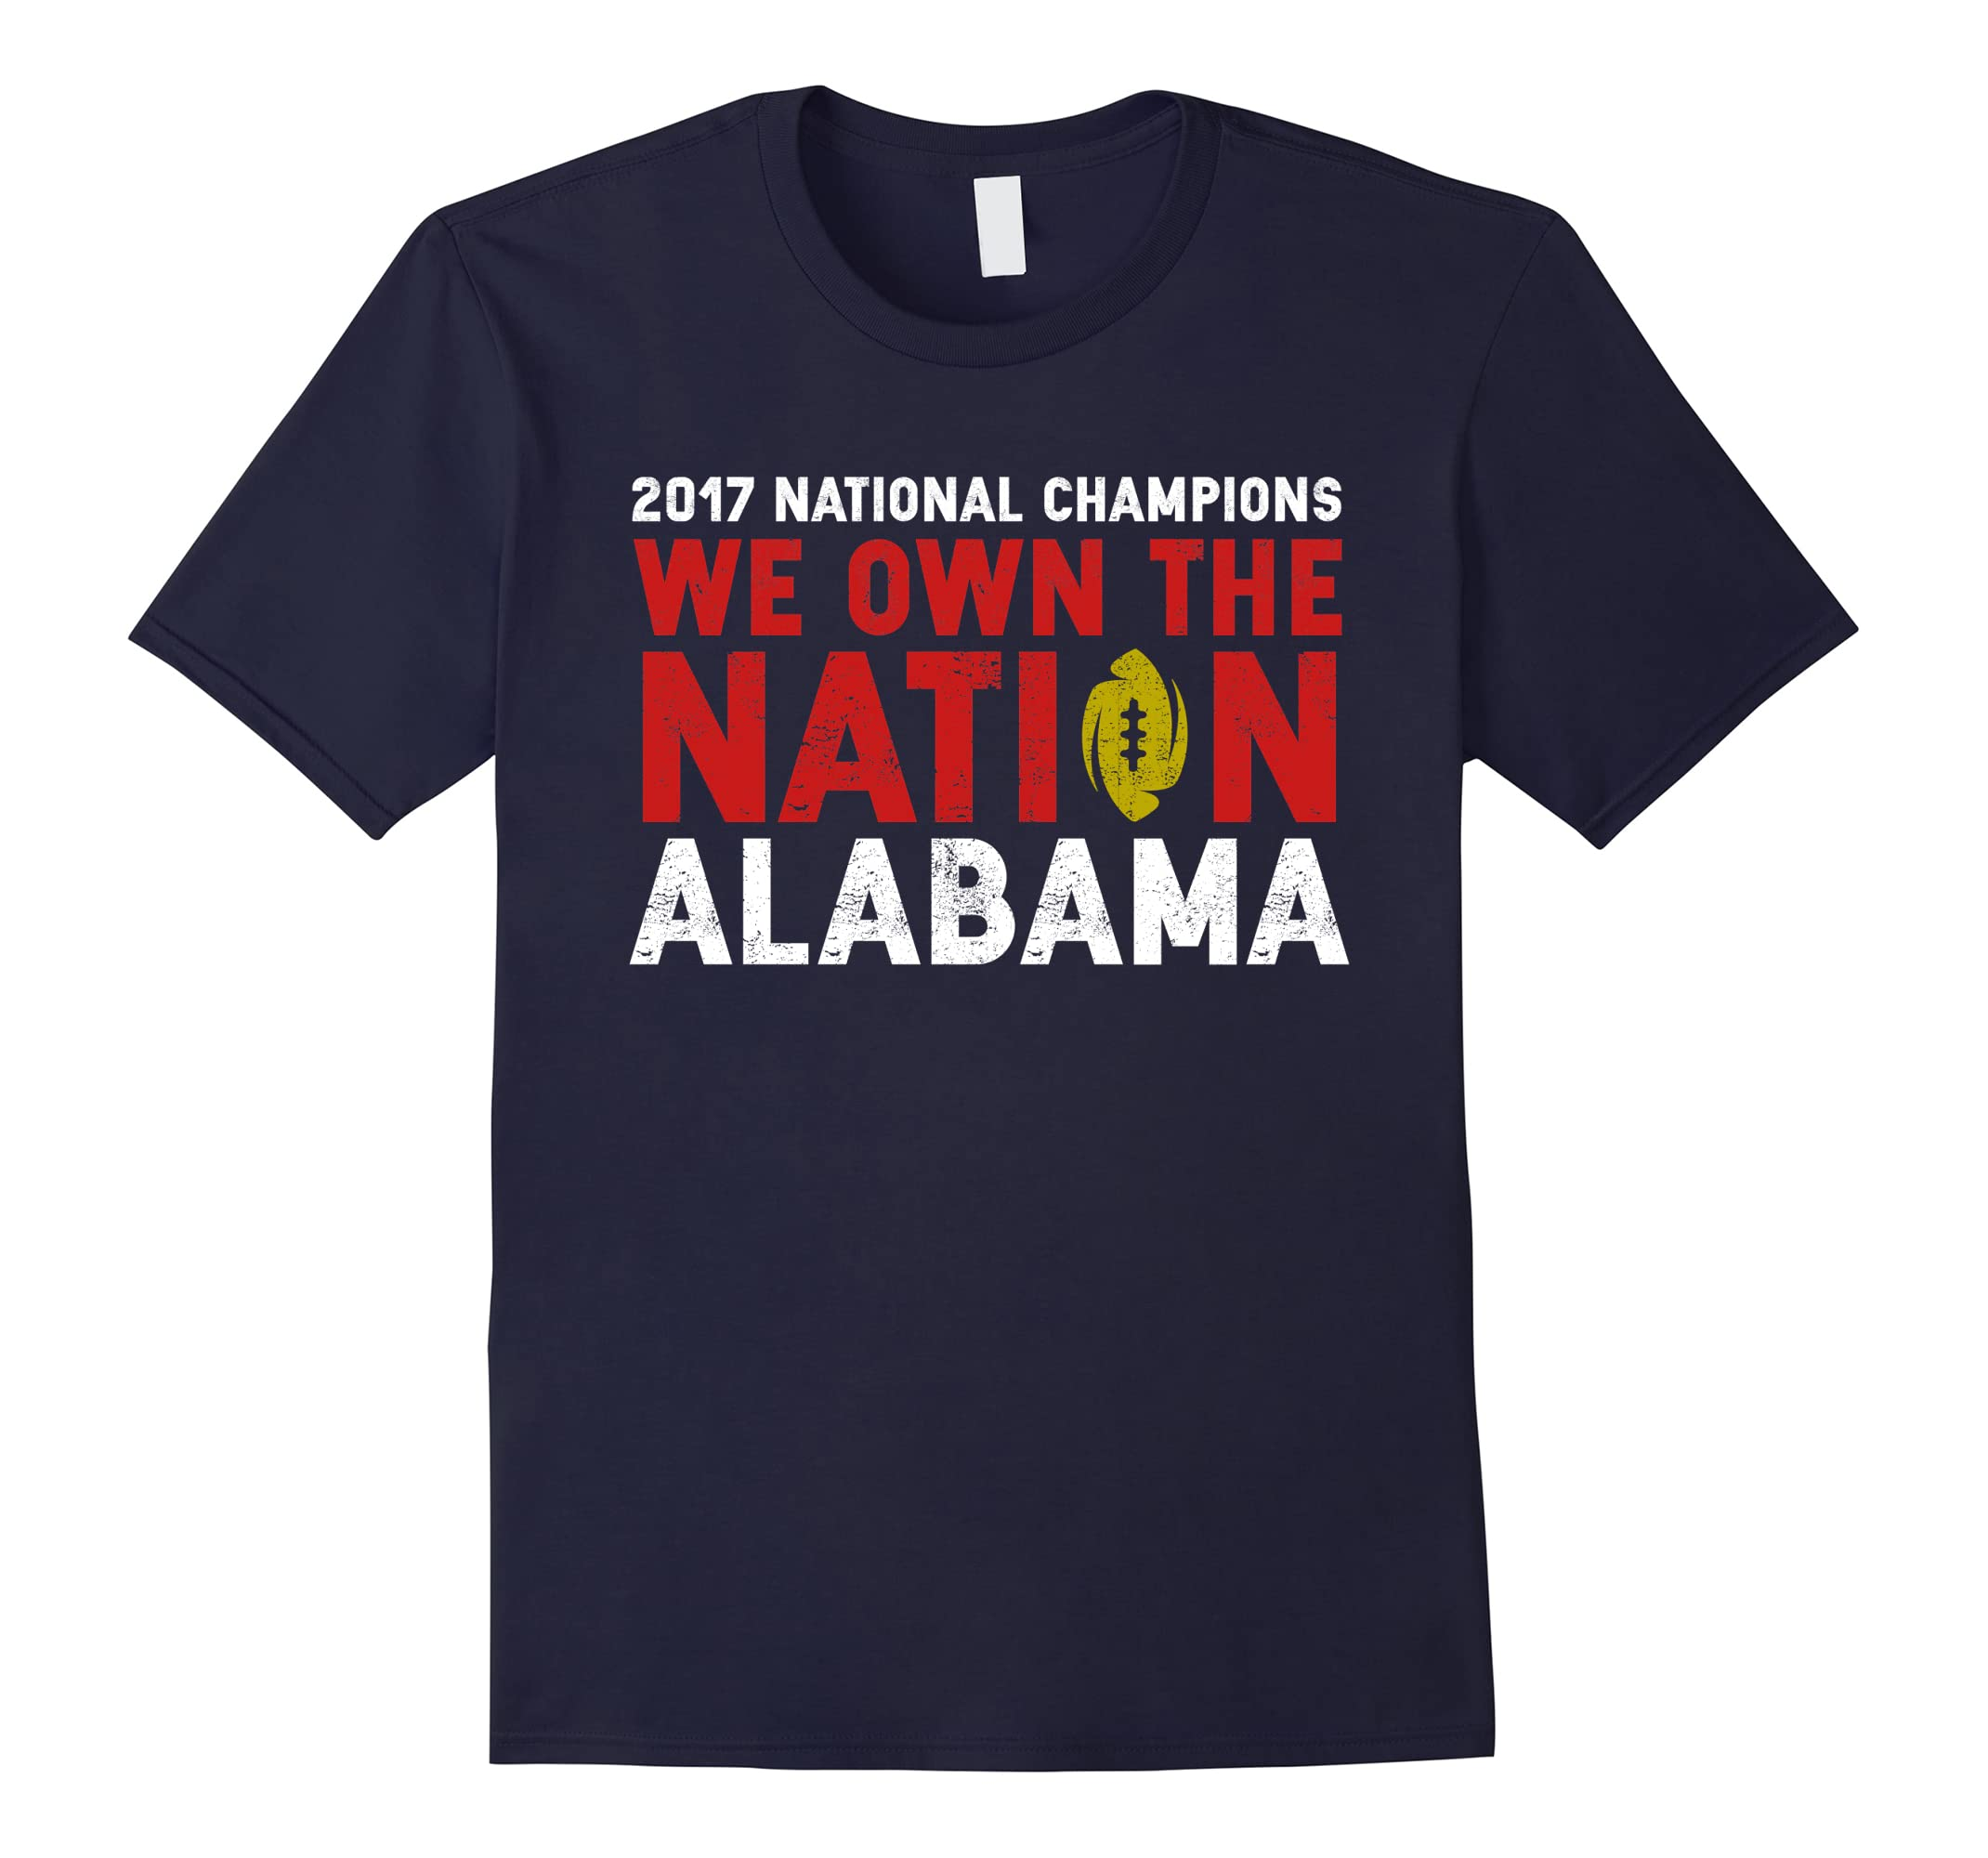 Alabama 2017 National Champions - We Own The Nation Shirt-ah my shirt one gift